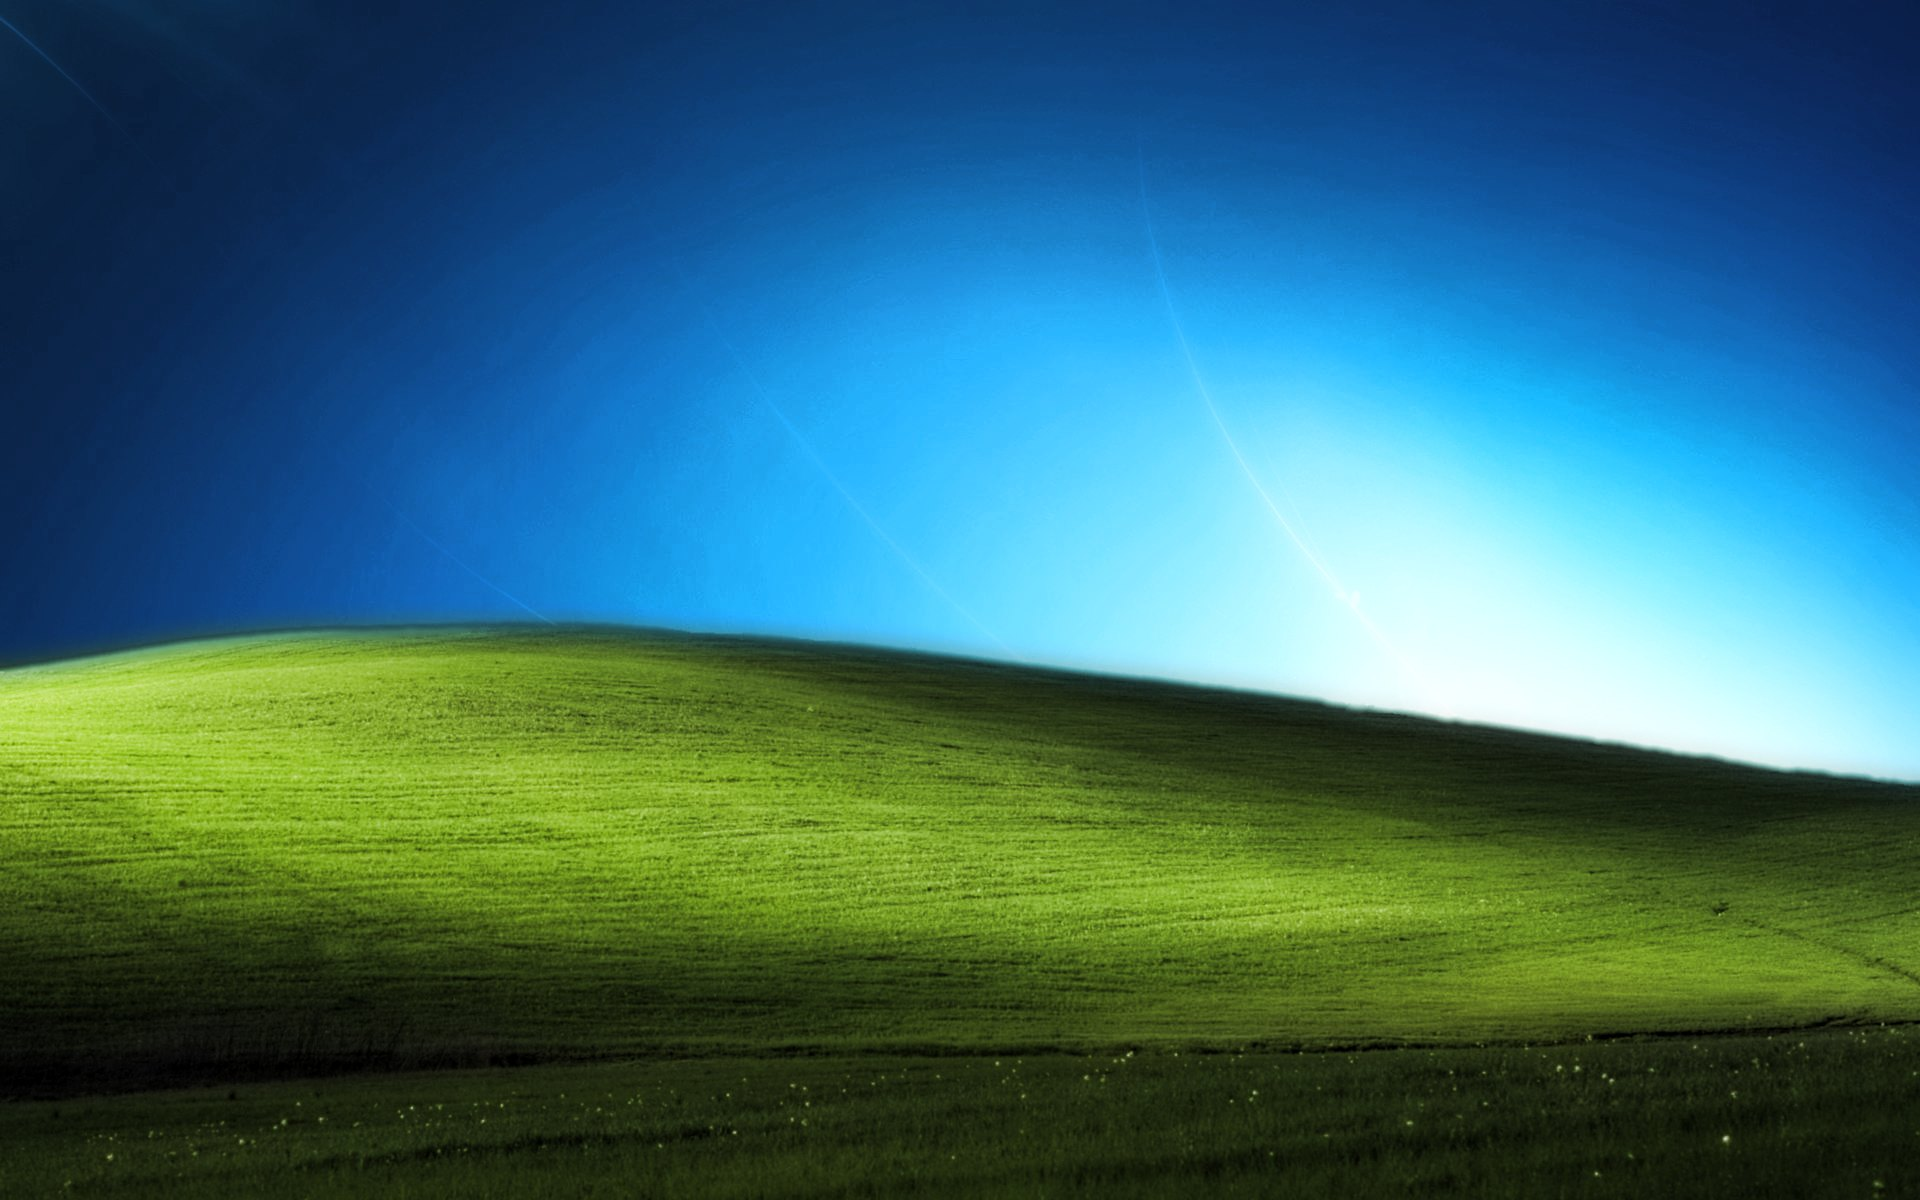 windows xp desktop wallpaper for pc 1